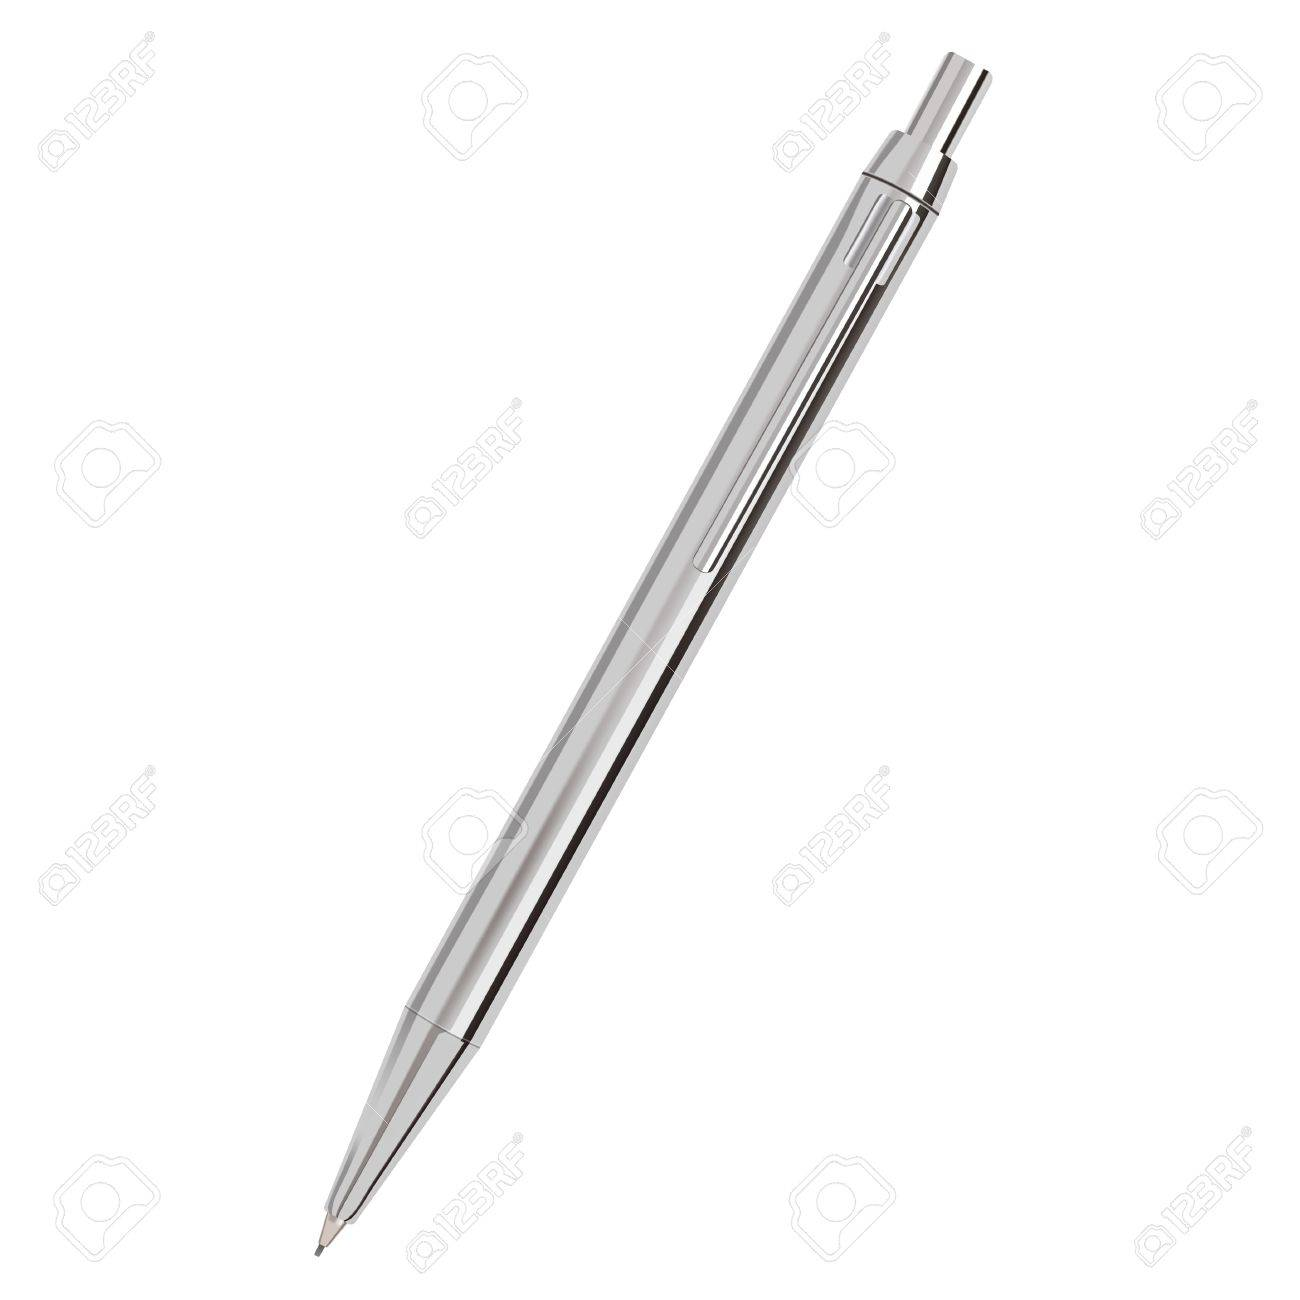 Silver Ballpoint Pen isolated on white Illustration Stock Vector - 19856239